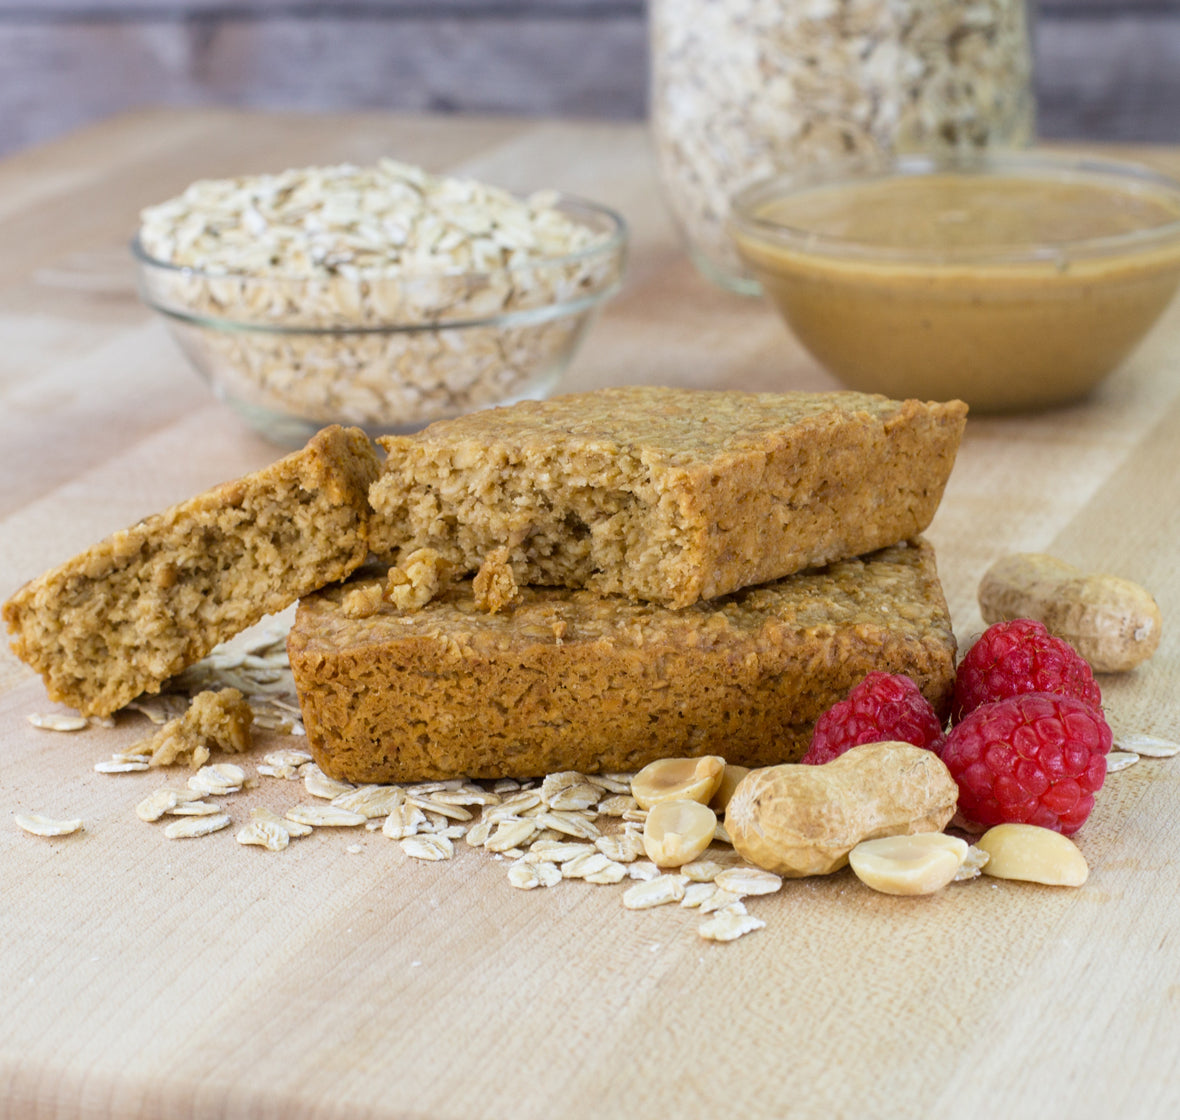 Peanut Butter & Jelly Oat Bar lifestyle image